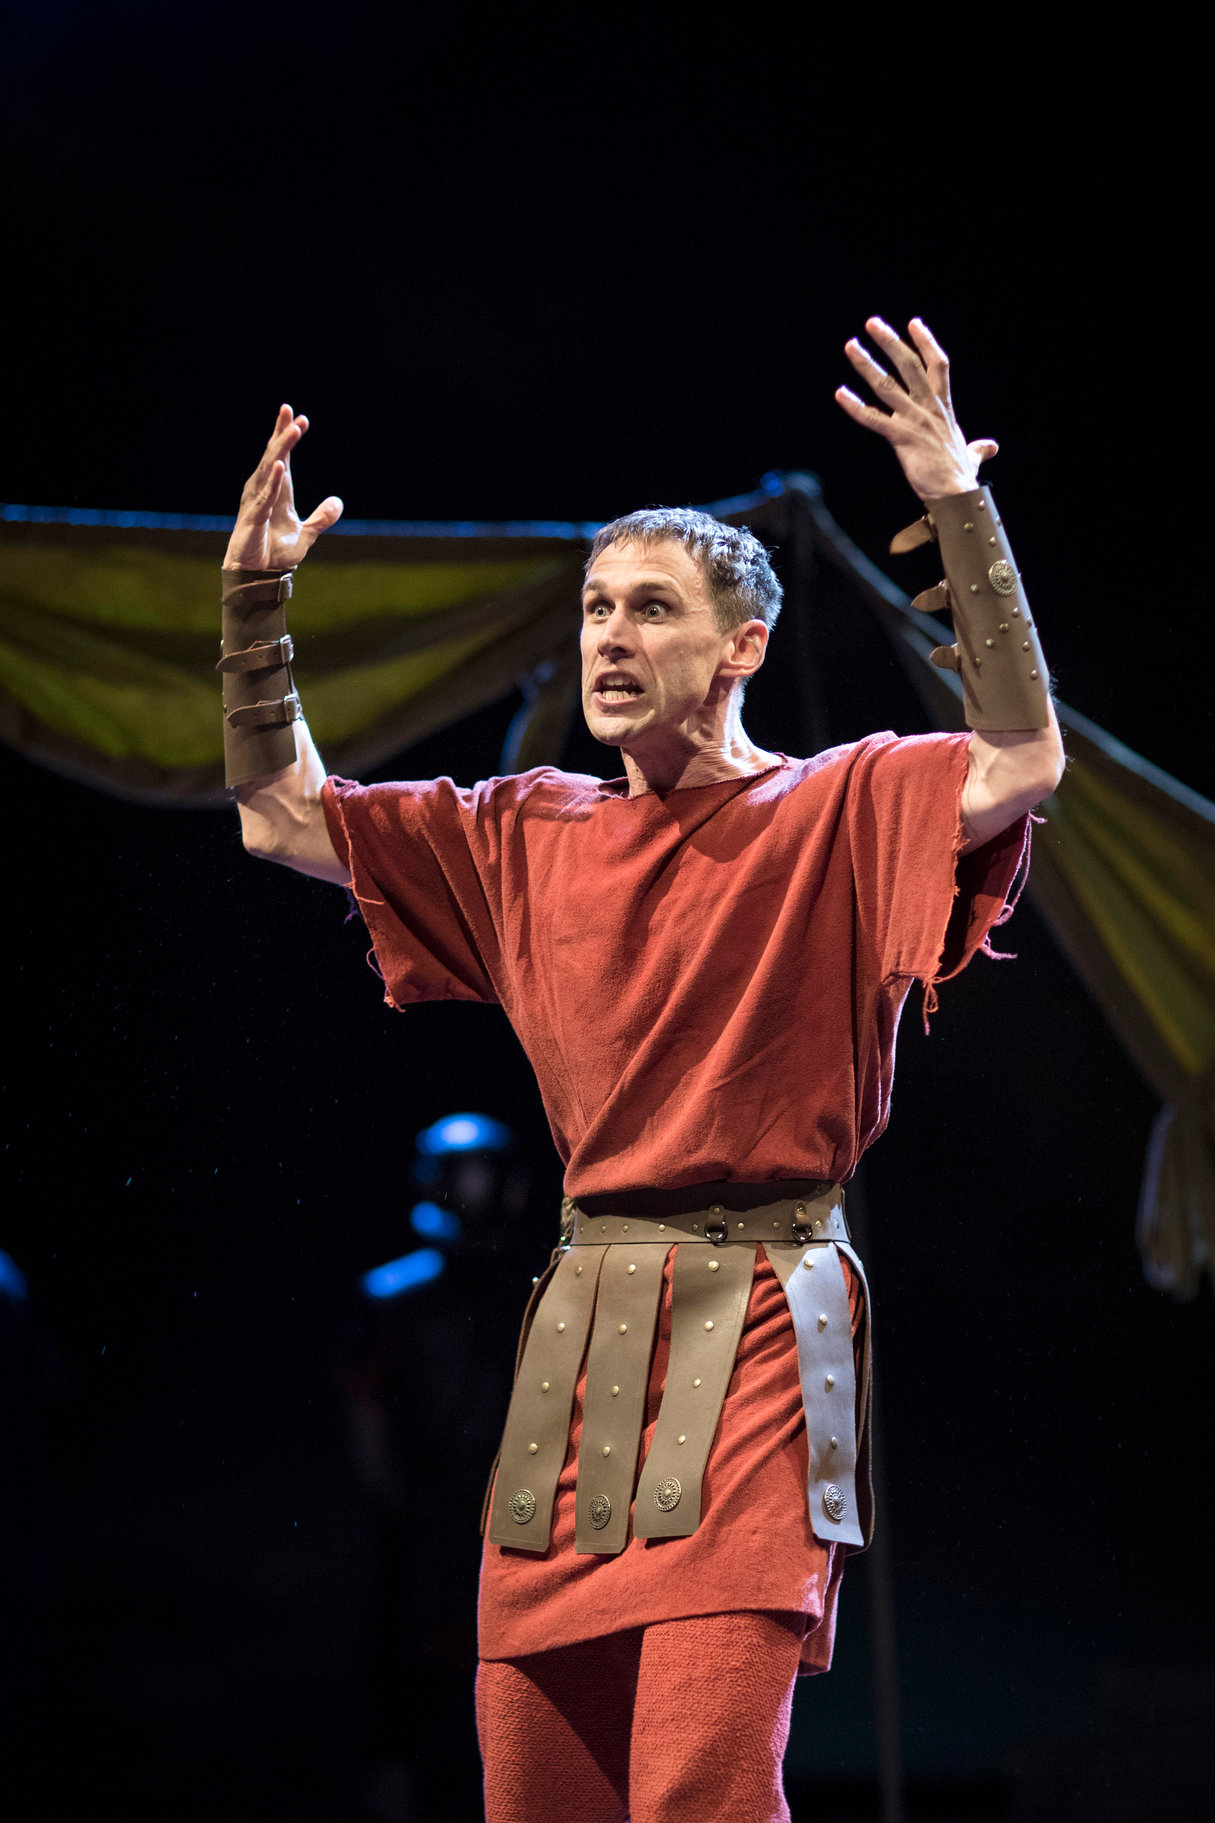 Cassius stands in uniform with his arms in the air in the 2017 production of Julius Caesar.